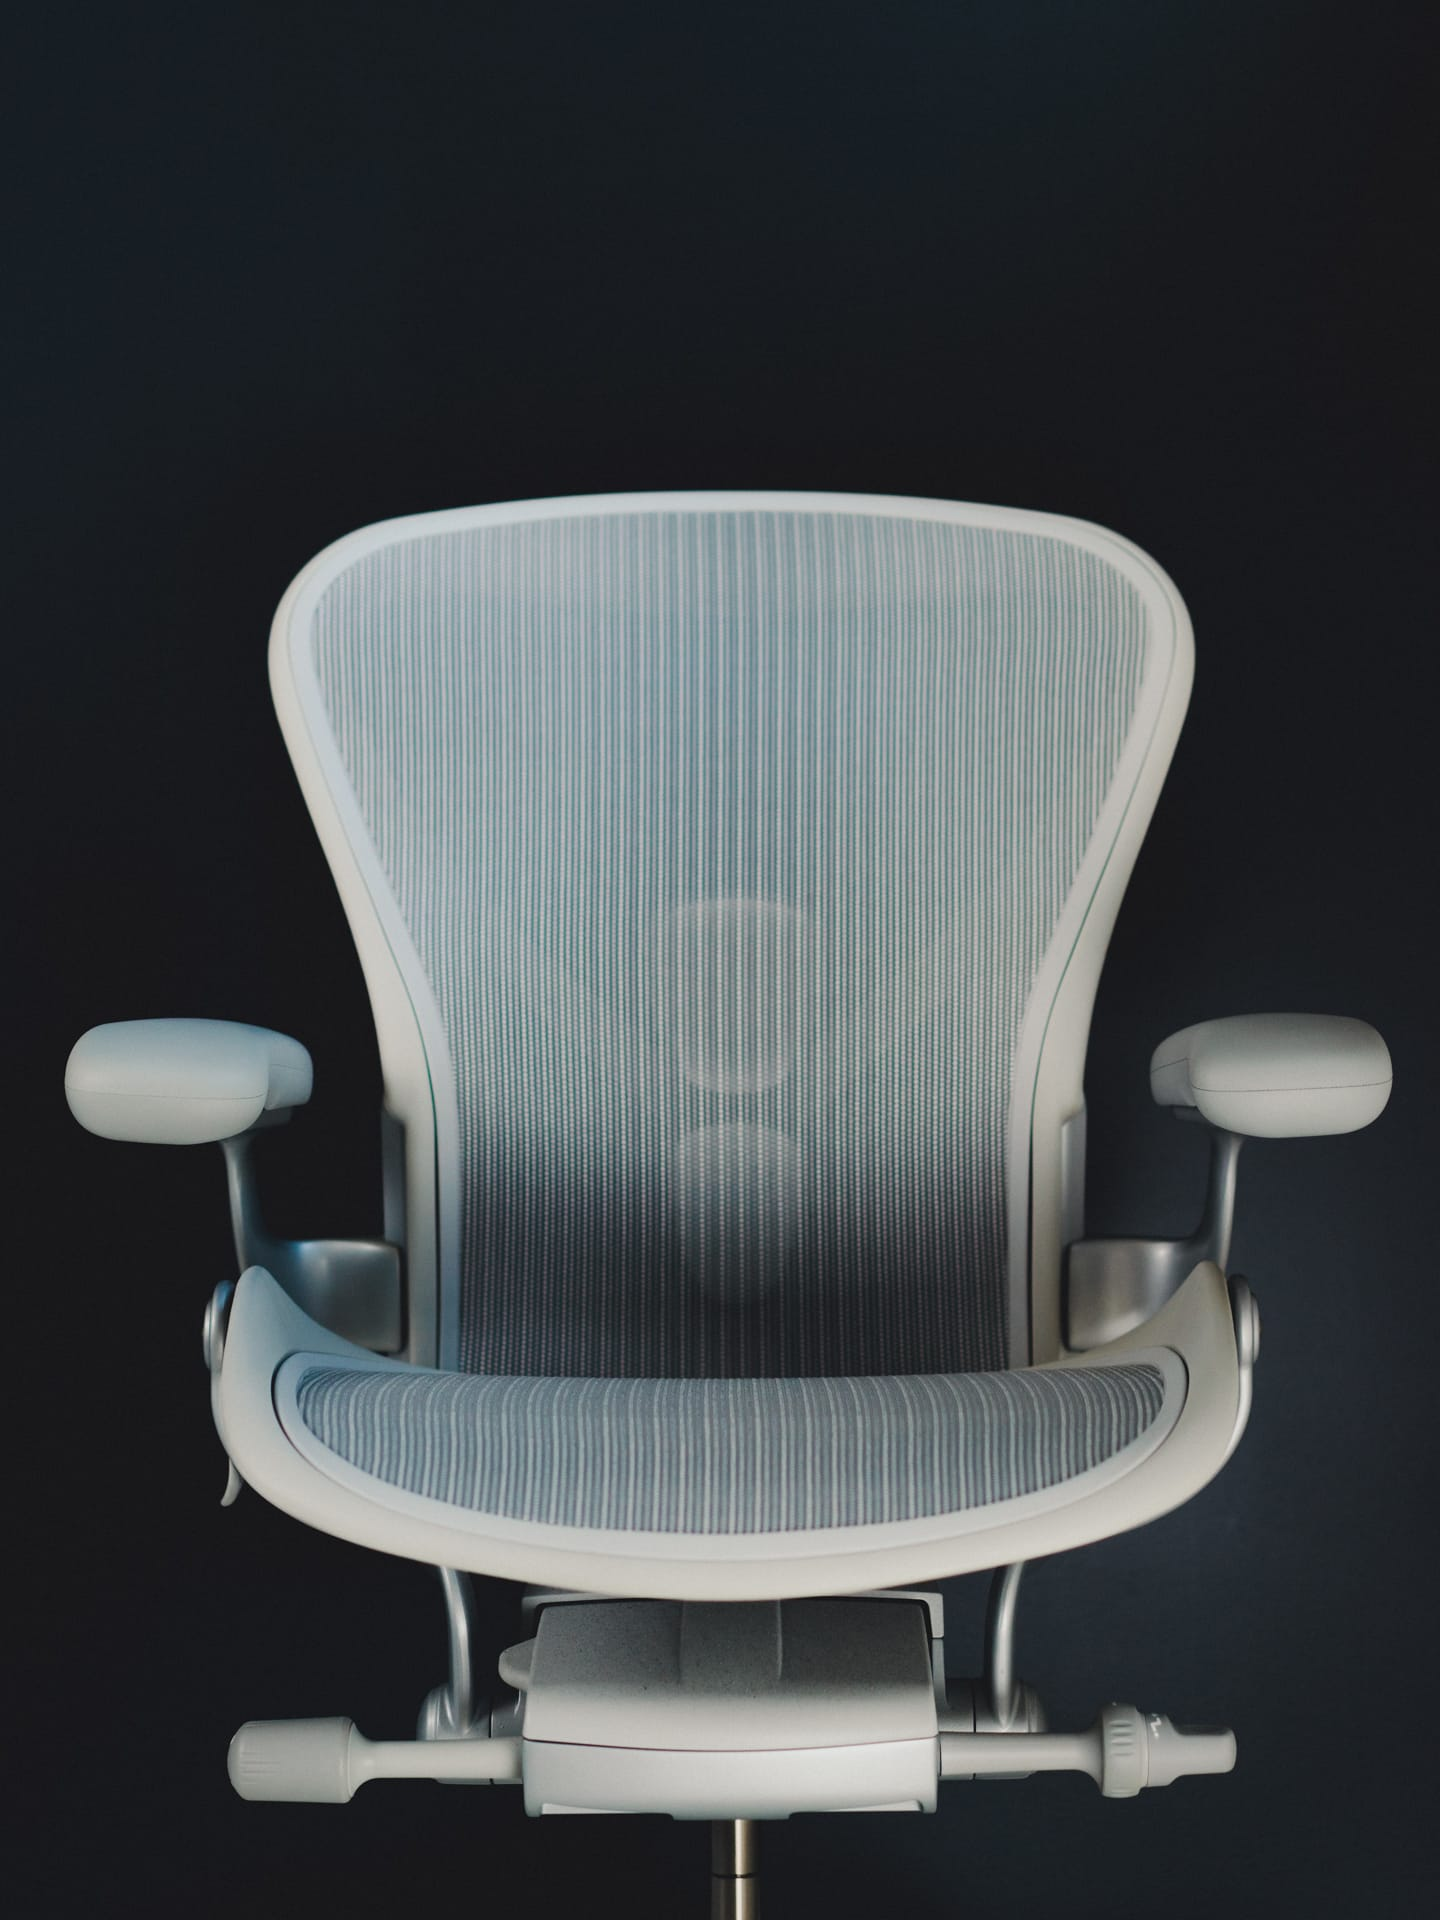 a review of the remastered herman miller aeron office chair